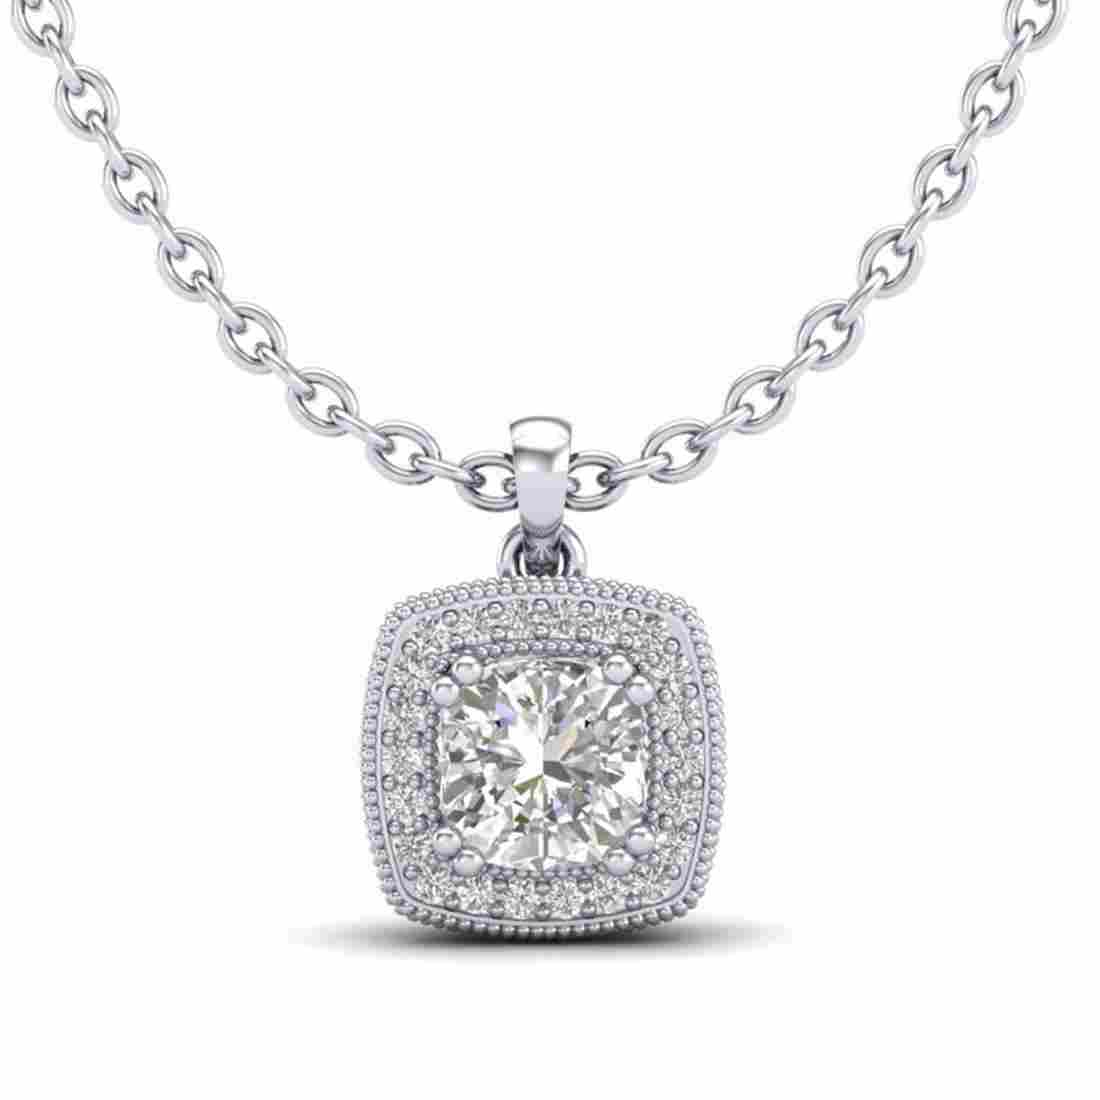 1.25 ctw Cushion Diamond Art Deco Necklace 18K White